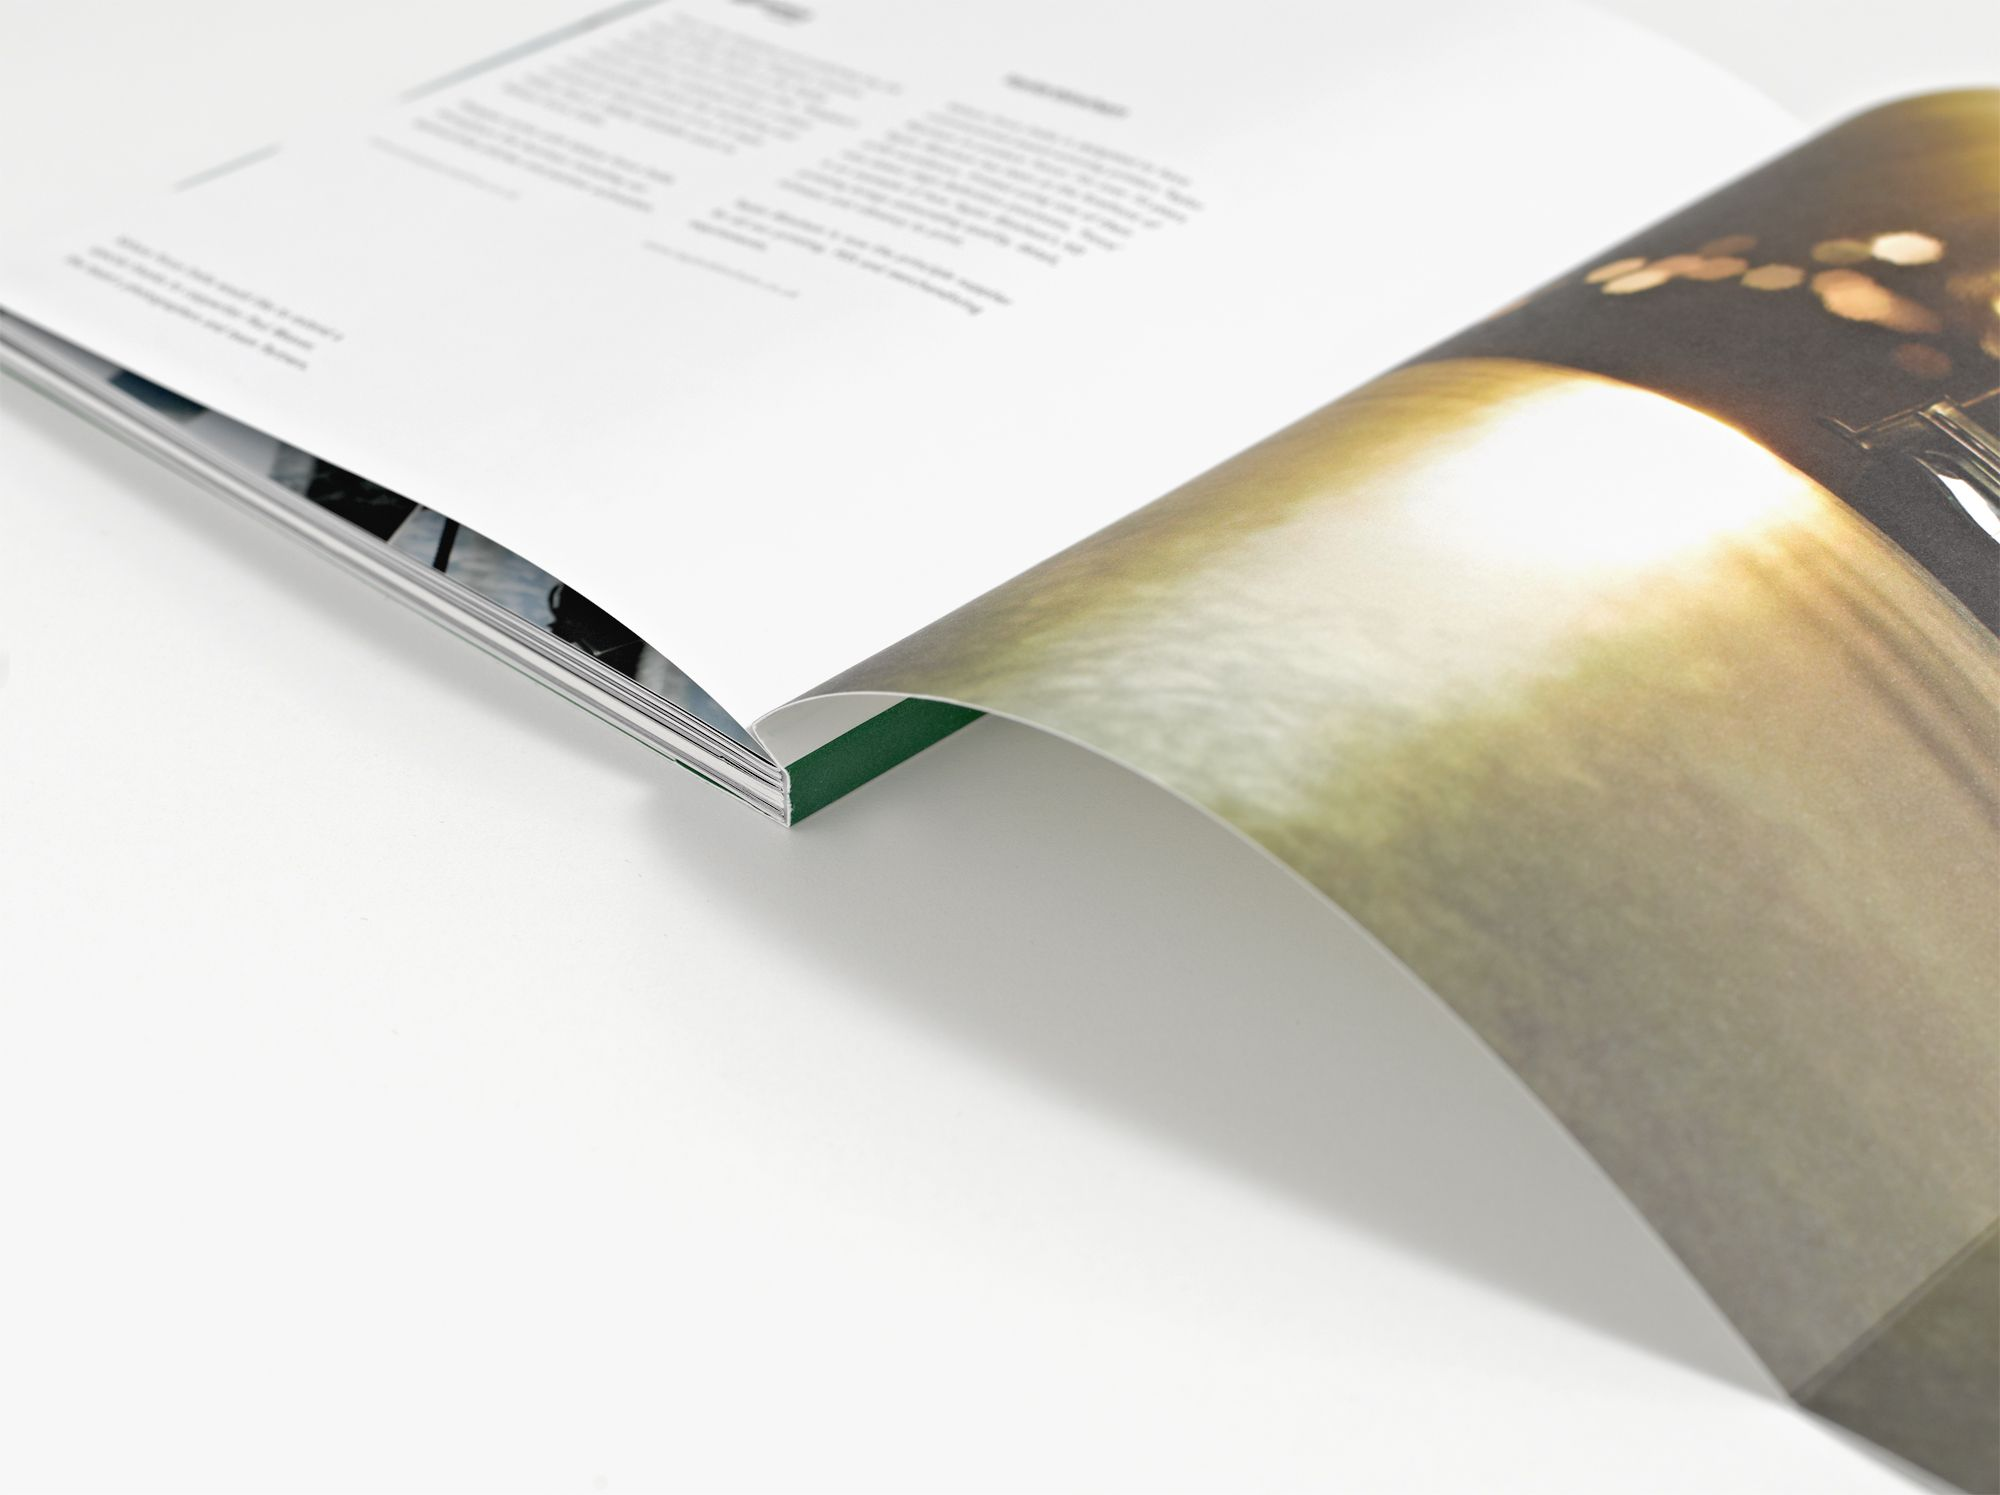 Gate-folded ccover detail. From 'FORCE', a book for Sahara Force India Formula One team, designed and published by Pangaea Creative.